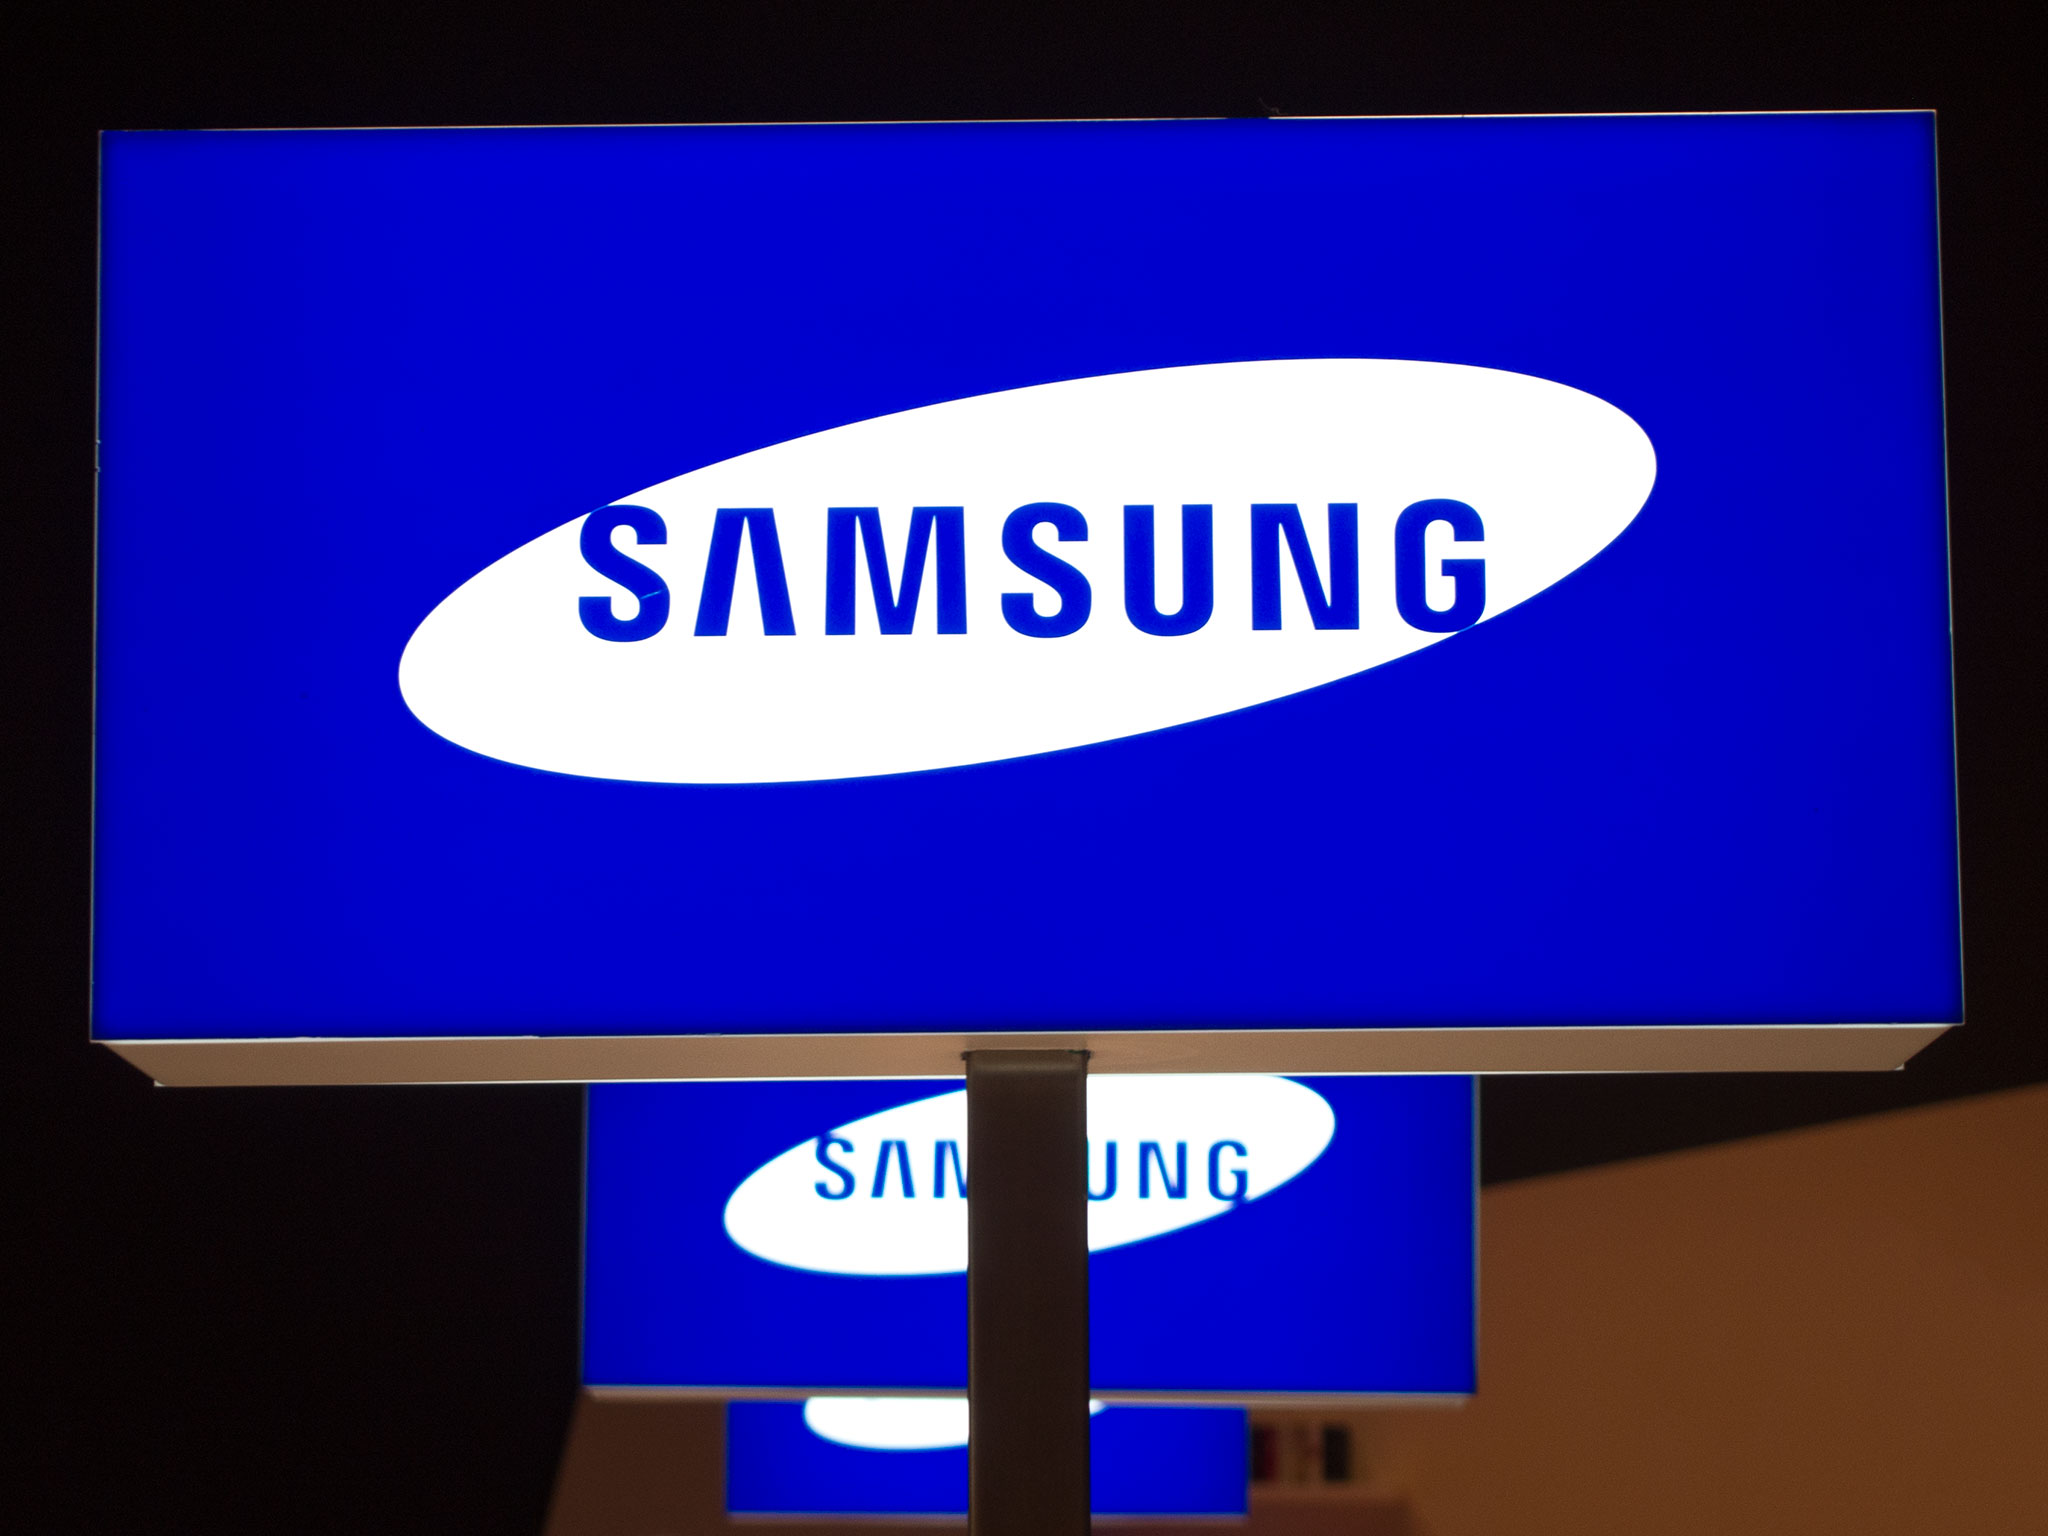 Samsung predicts more declining profits in Q4 2014 guidance report